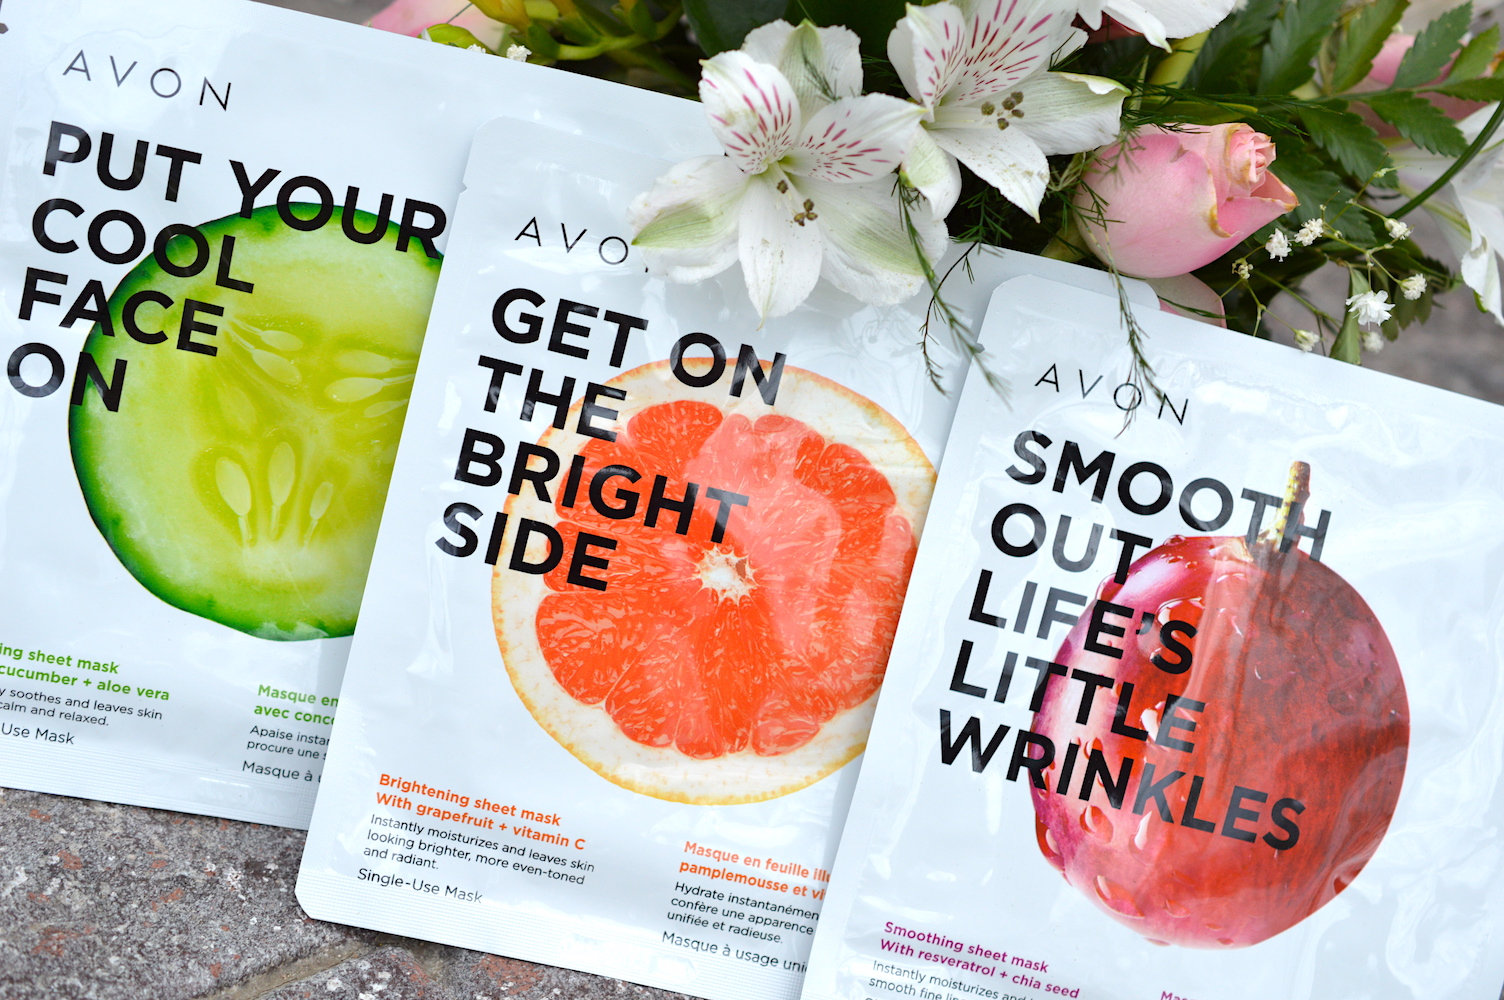 Avon Get On the Bright Side Brighten Sheet Mask